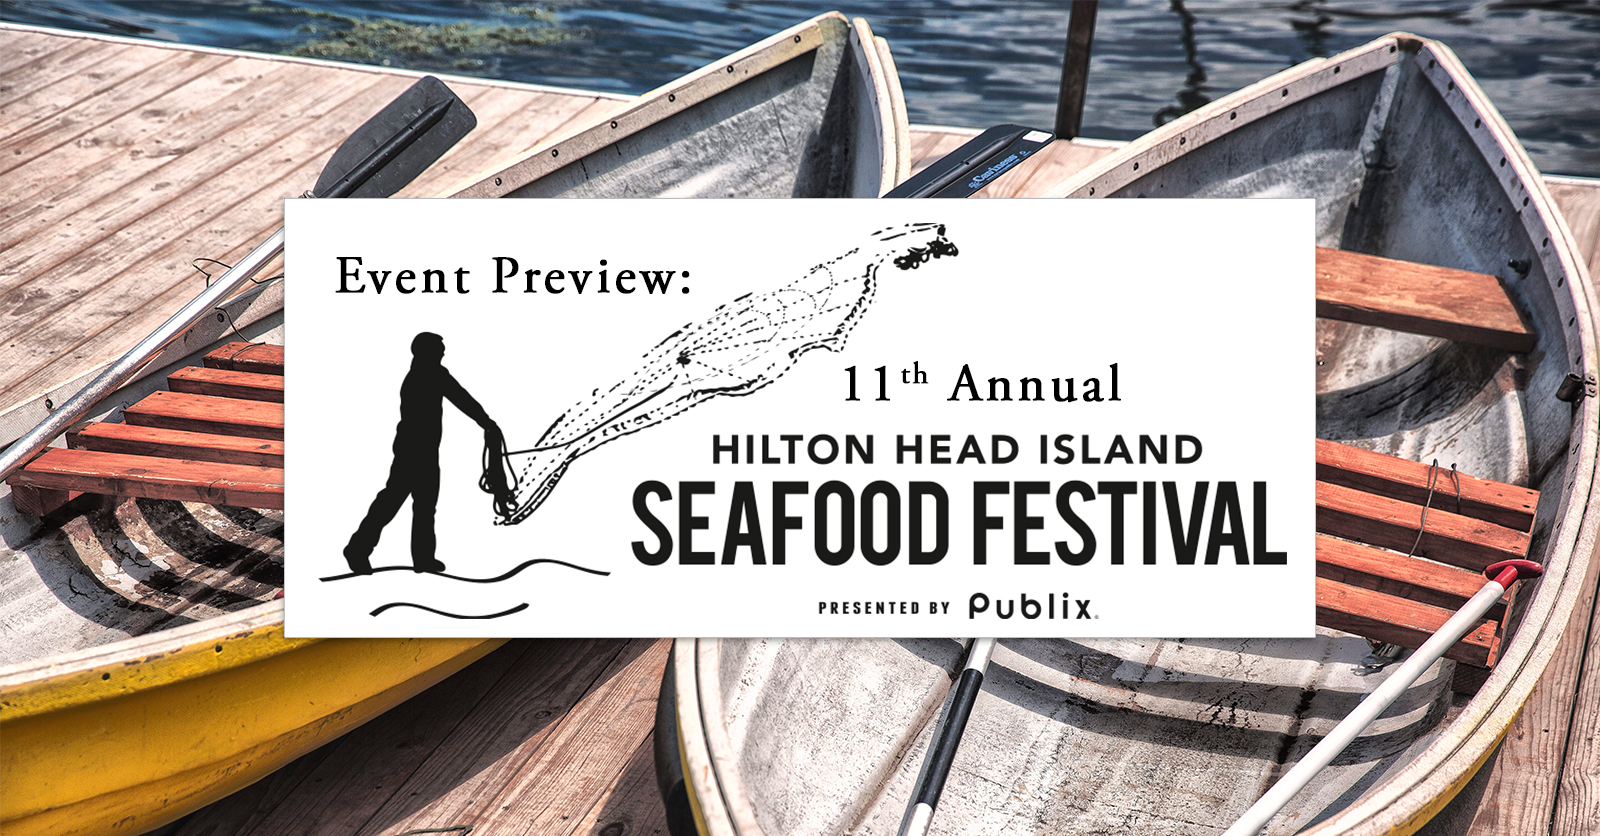 Event Preview: 11th Annual Hilton Head Island Seafood Festival